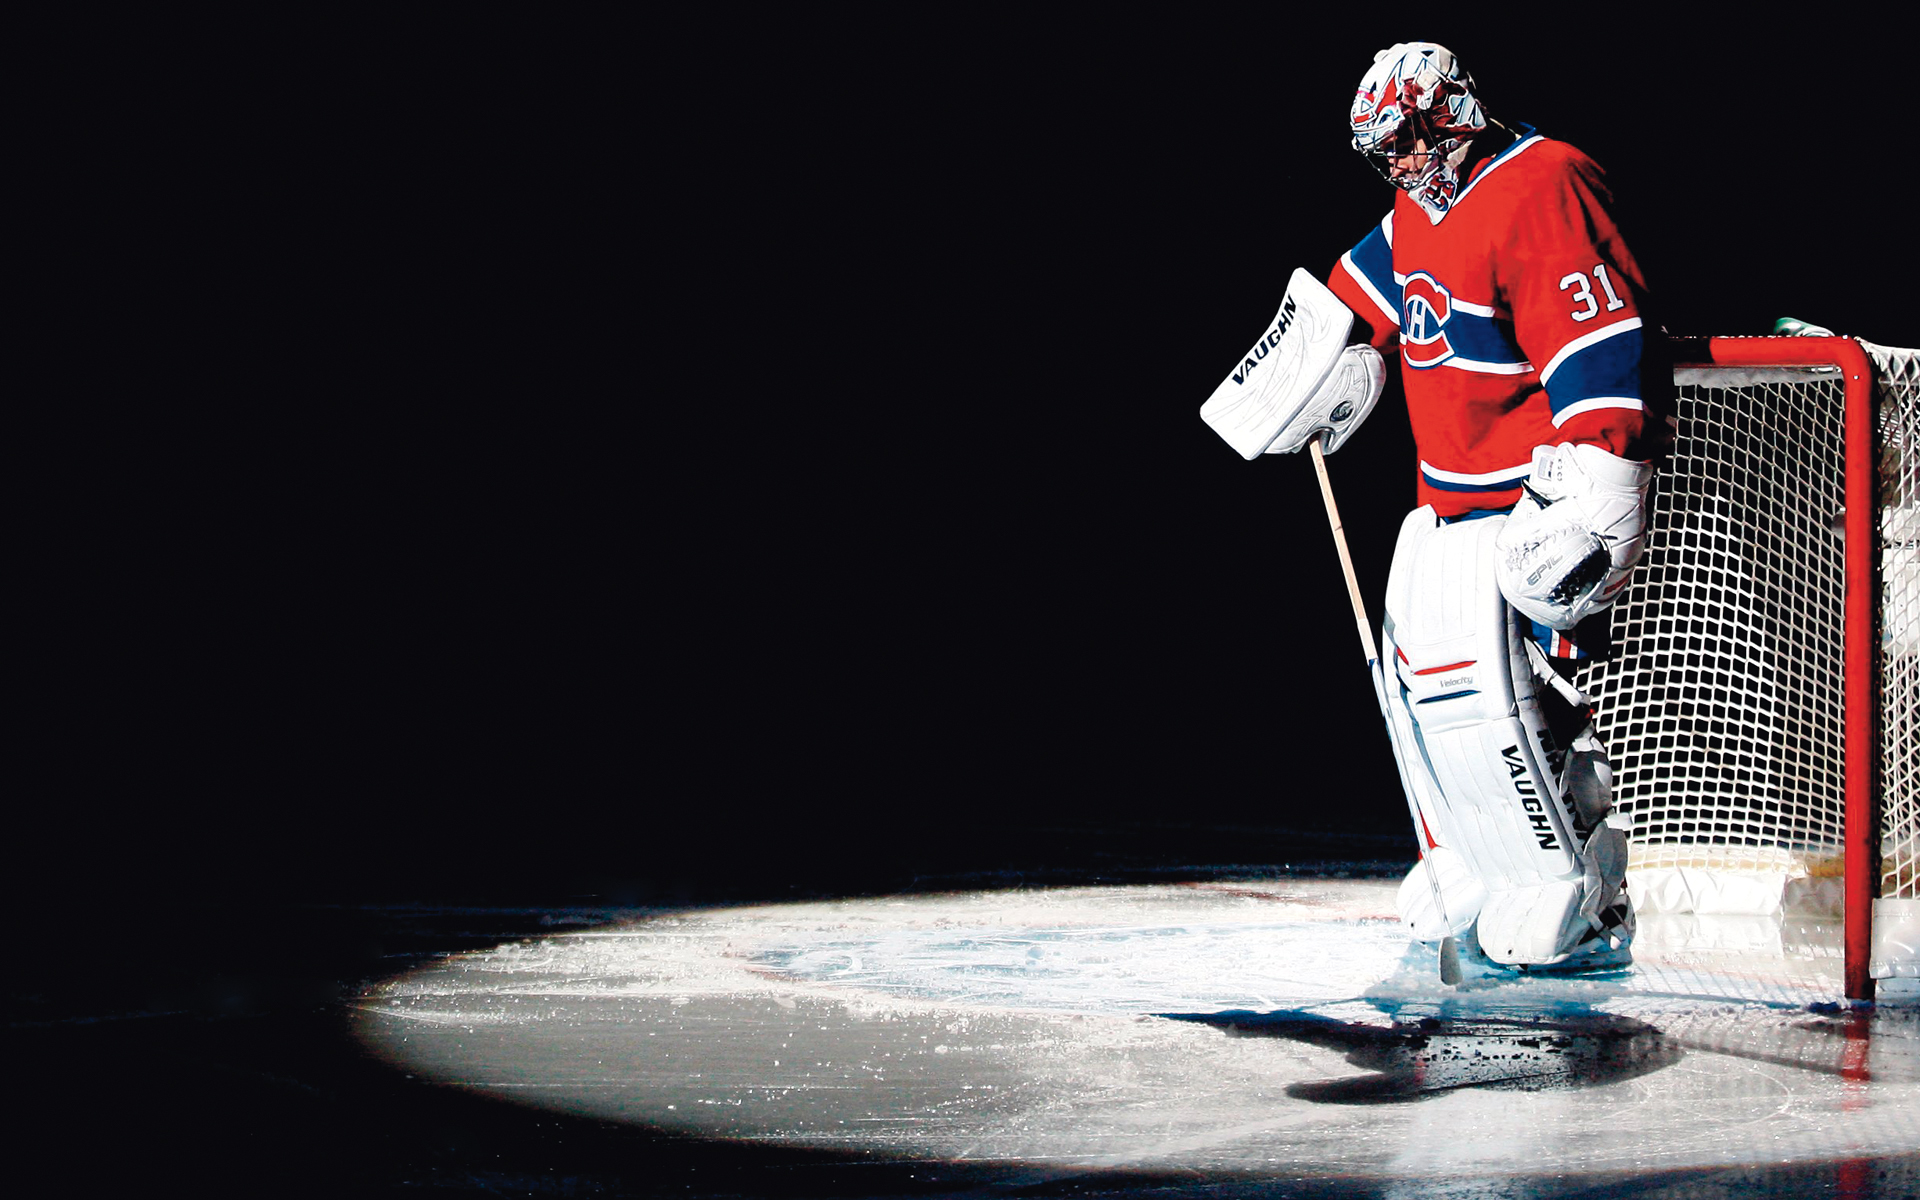 Carey price wallpapers montreal habs montreal hockey 9 html code - One On One With Montreal Canadiens Goalie Carey Price The Hockey